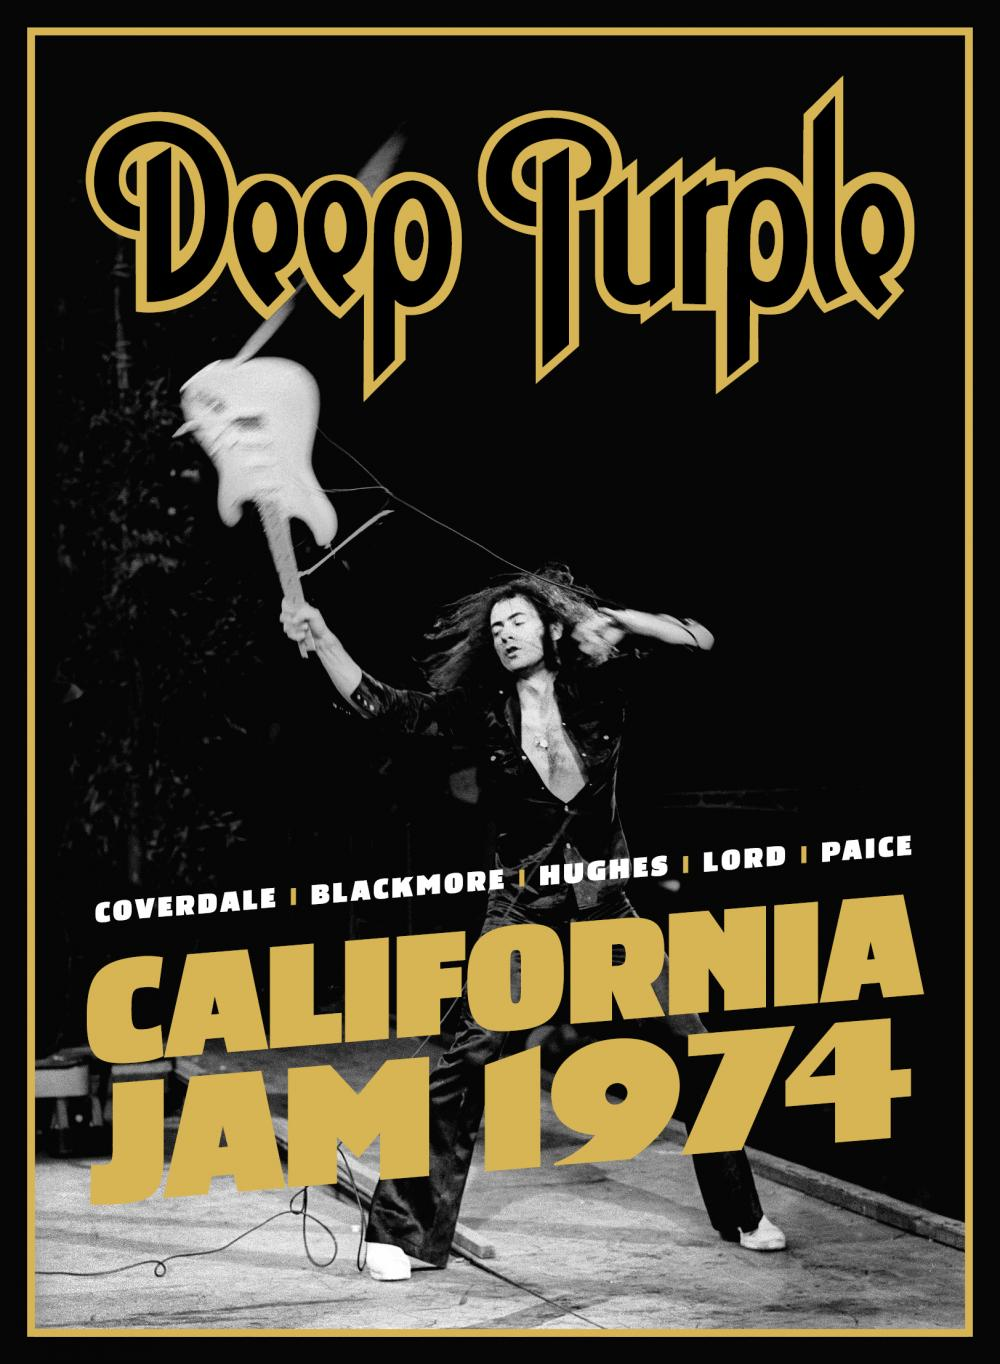 Buy Online Deep Purple - California Jam '74